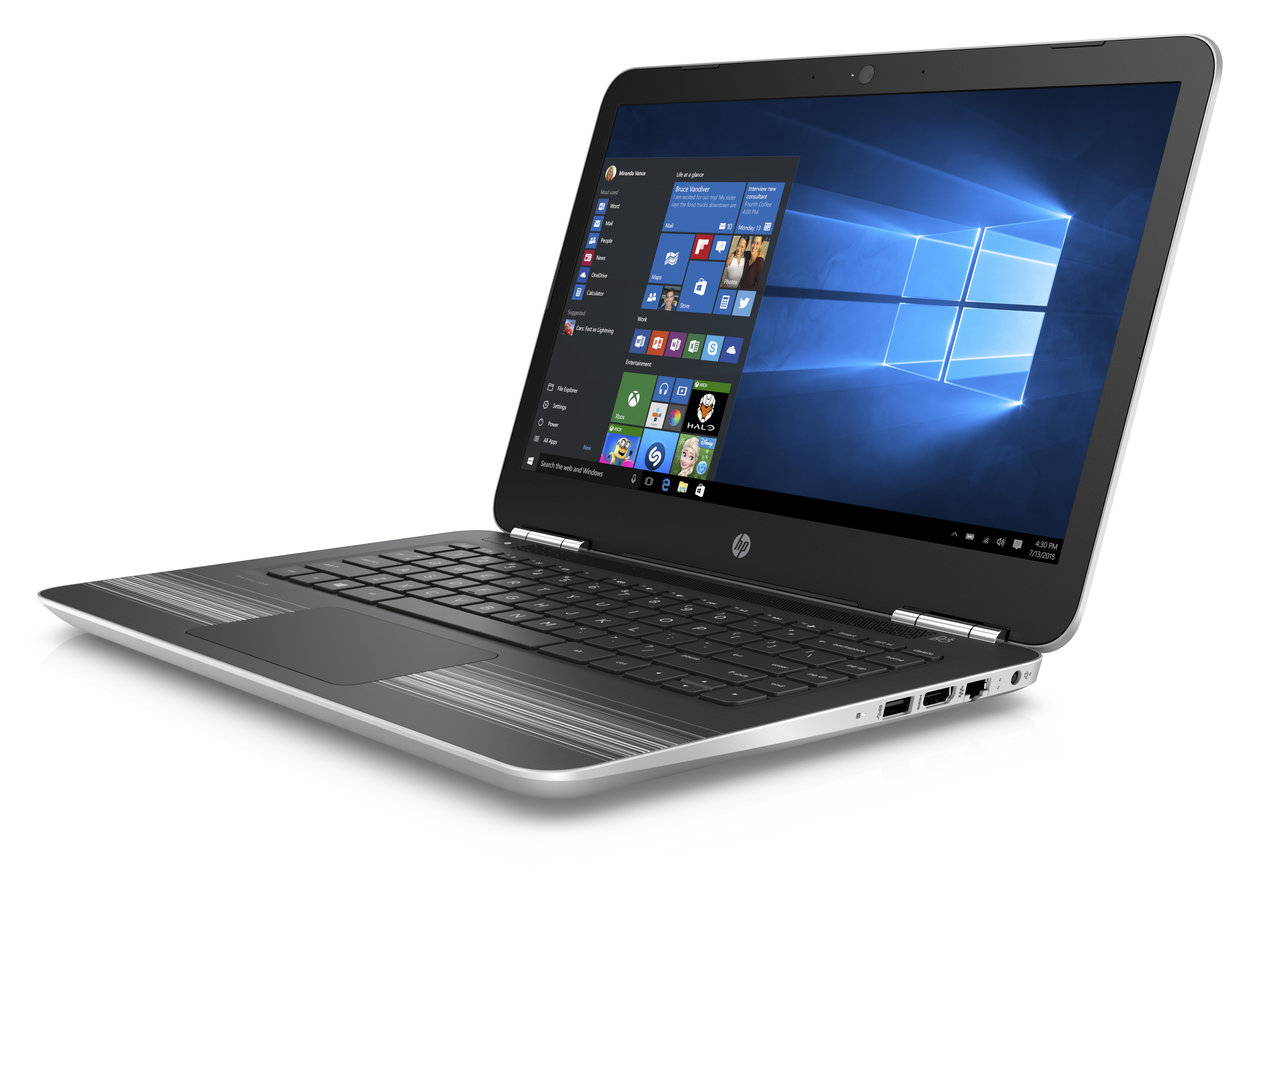 HP Pavilion 14 in Natural Silver